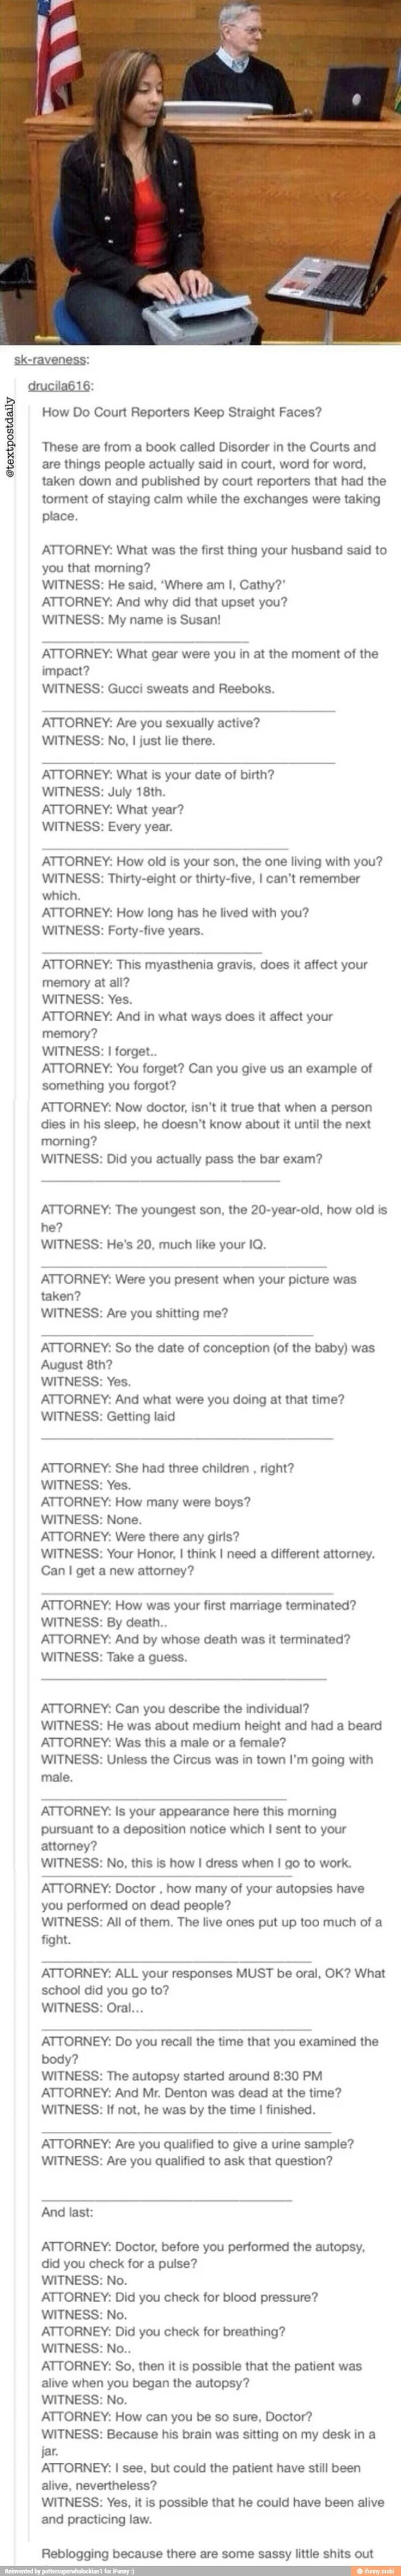 My favorite ones are the   doctor ones. The one at the end had me laughing out loud!!!